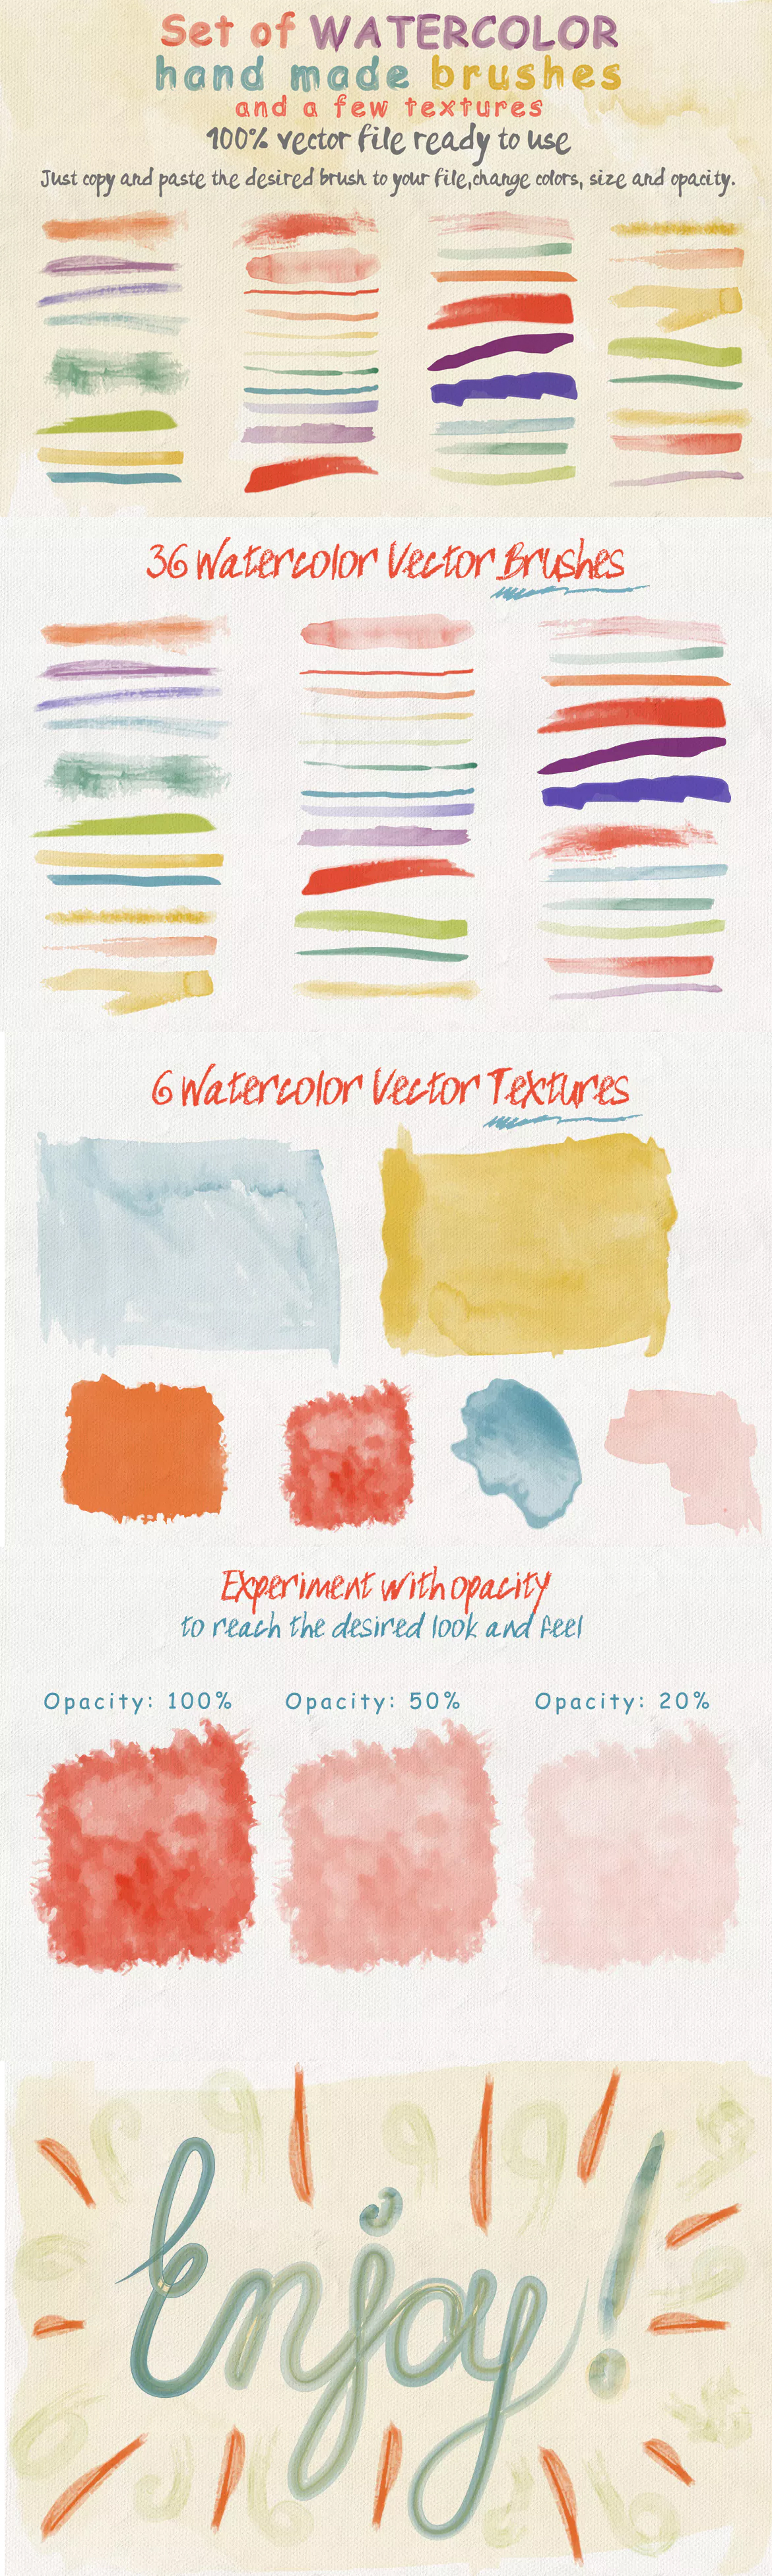 Set Of Watercolor Brushes And Textures Watercolor Brushes